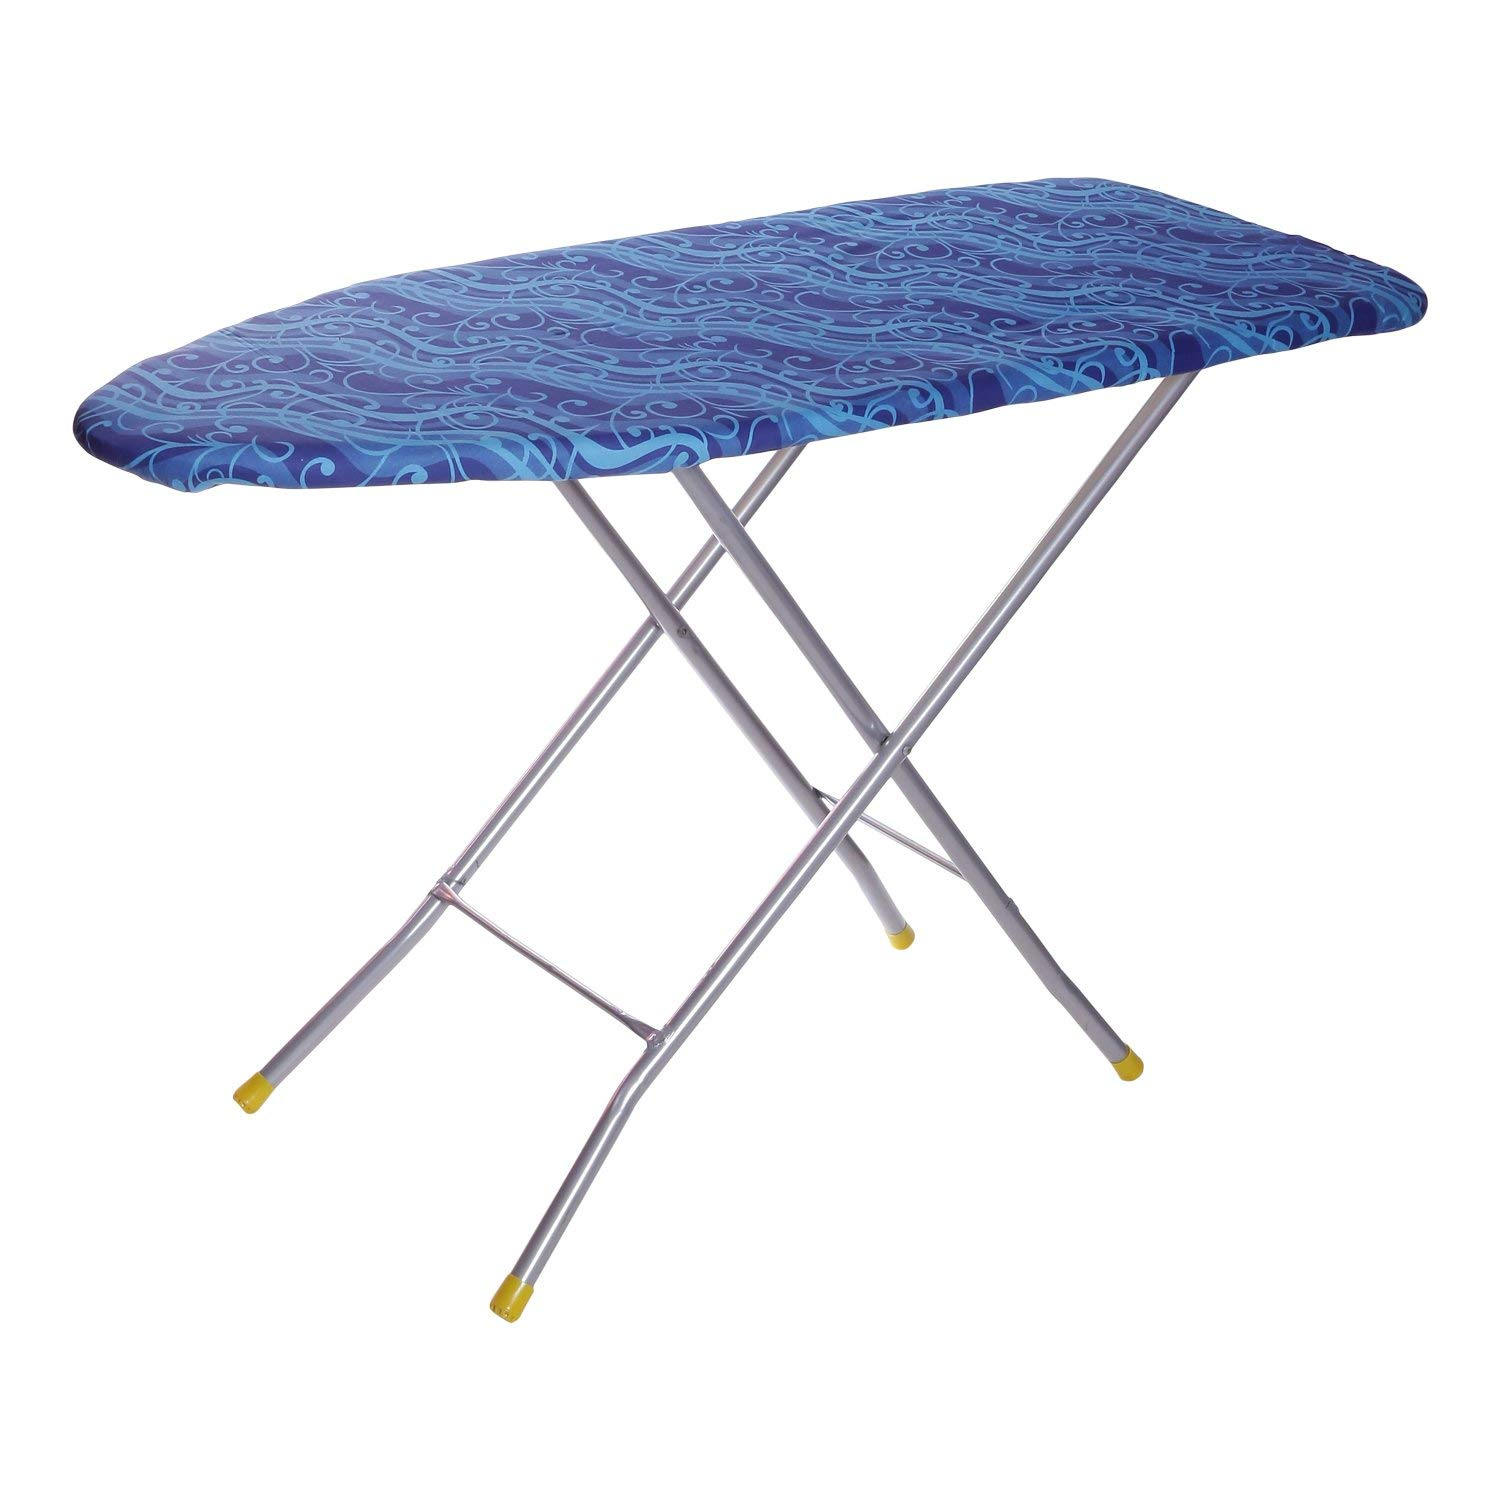 Archana NHR Ironing Board